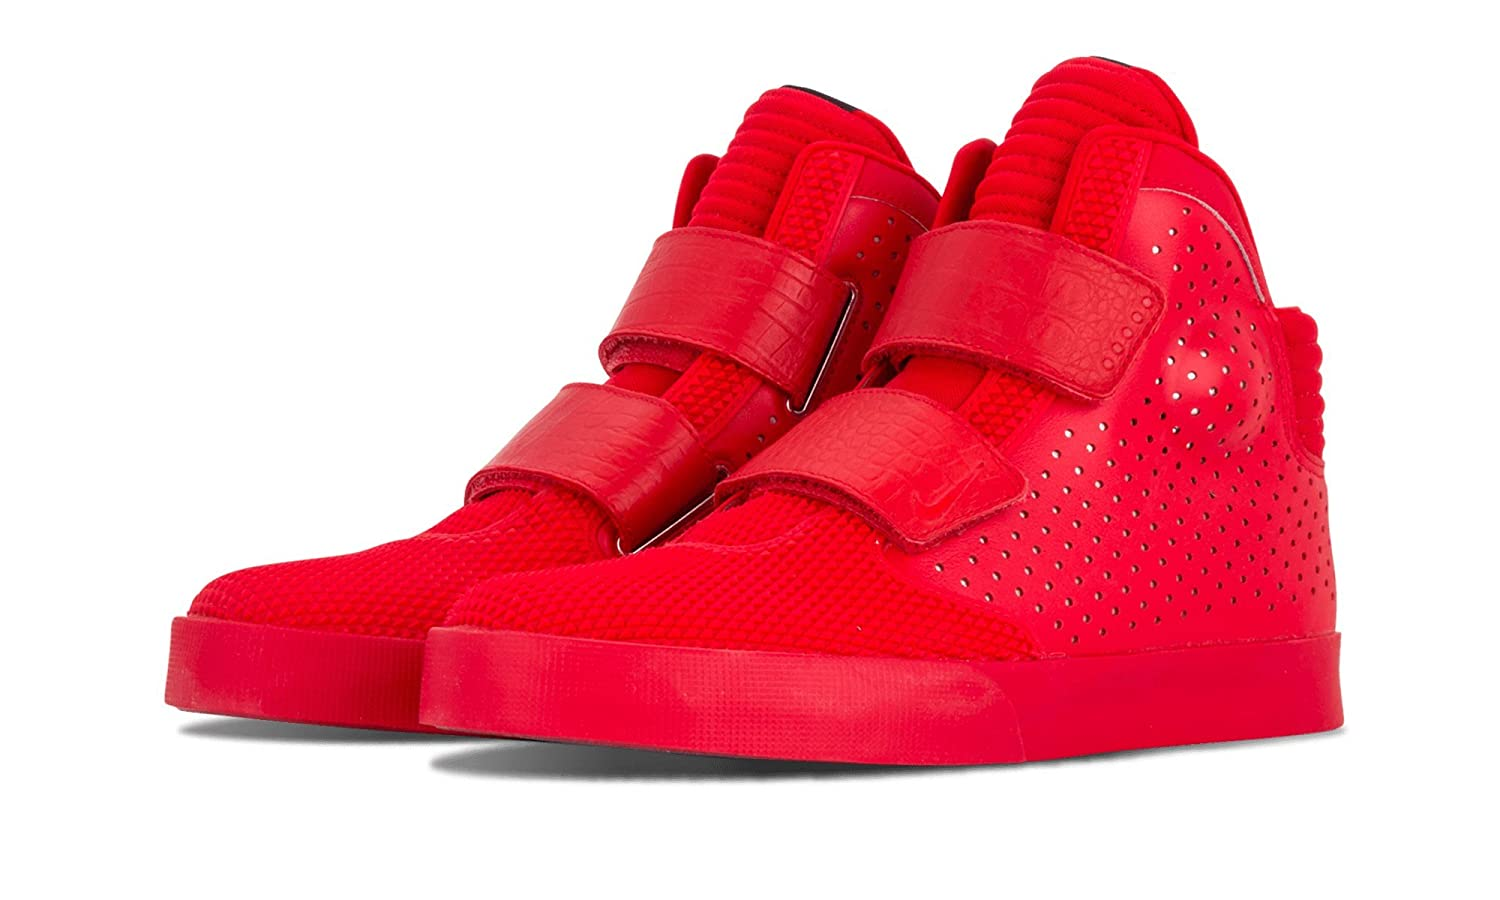 finest selection f75b2 c6af6 Amazon.com  Mens Nike Flystepper 2K3 PRM Running Shoes - 677473 601,  University RedChrome - Size 10 D(M) US  Road Running